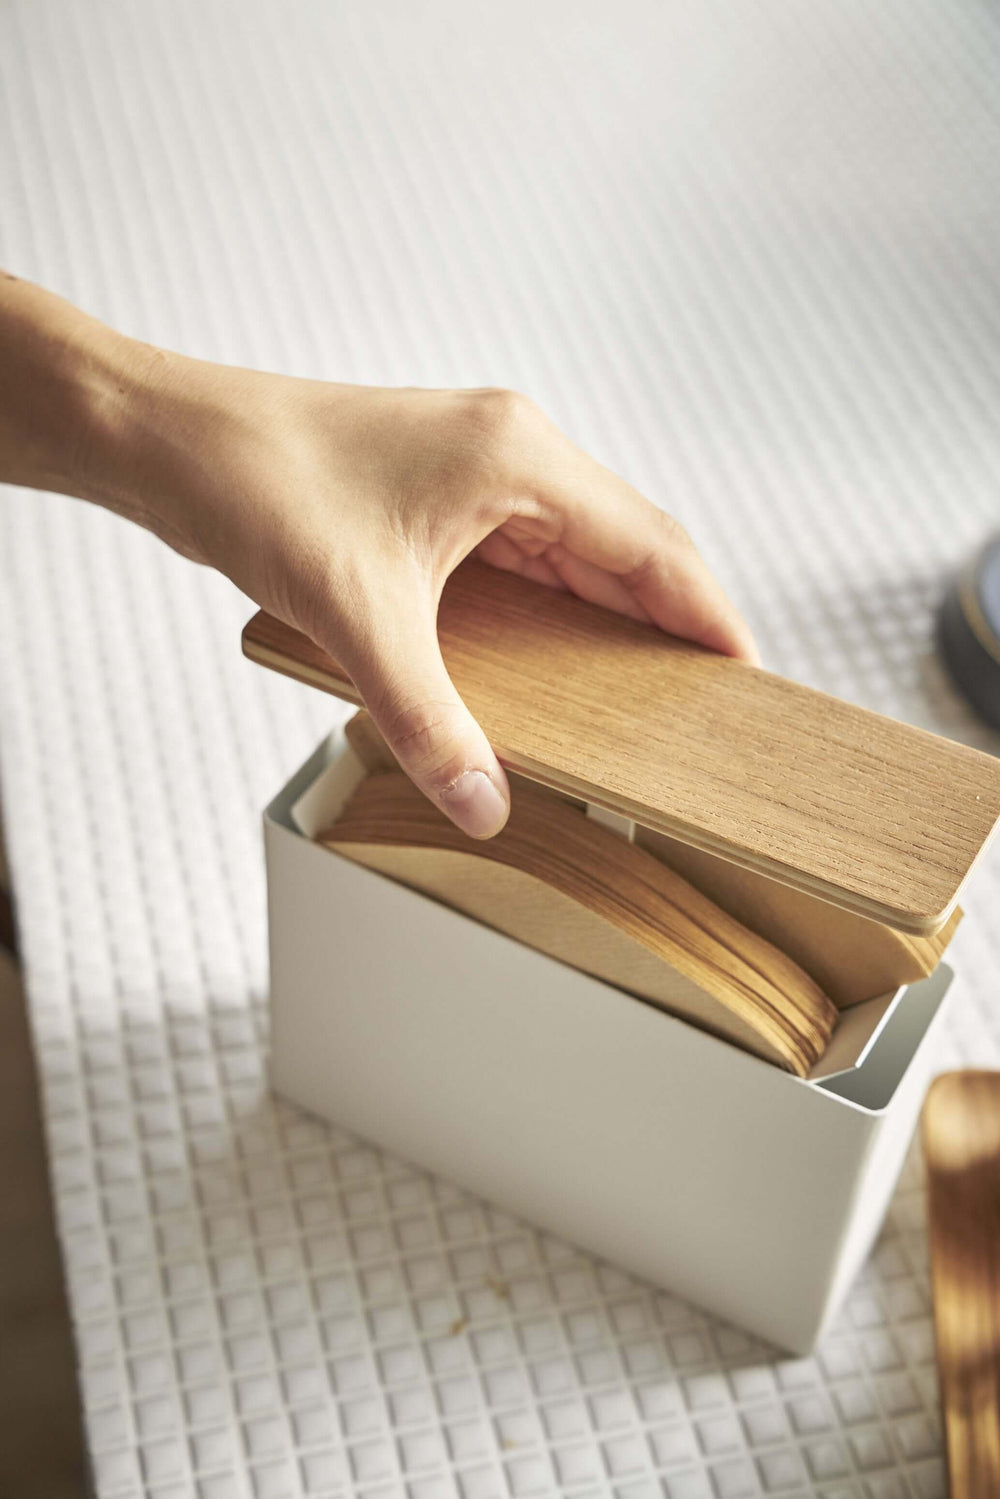 Person replacing the filters and lid to the Yamazaki Wood-Accent Coffee Filter Case